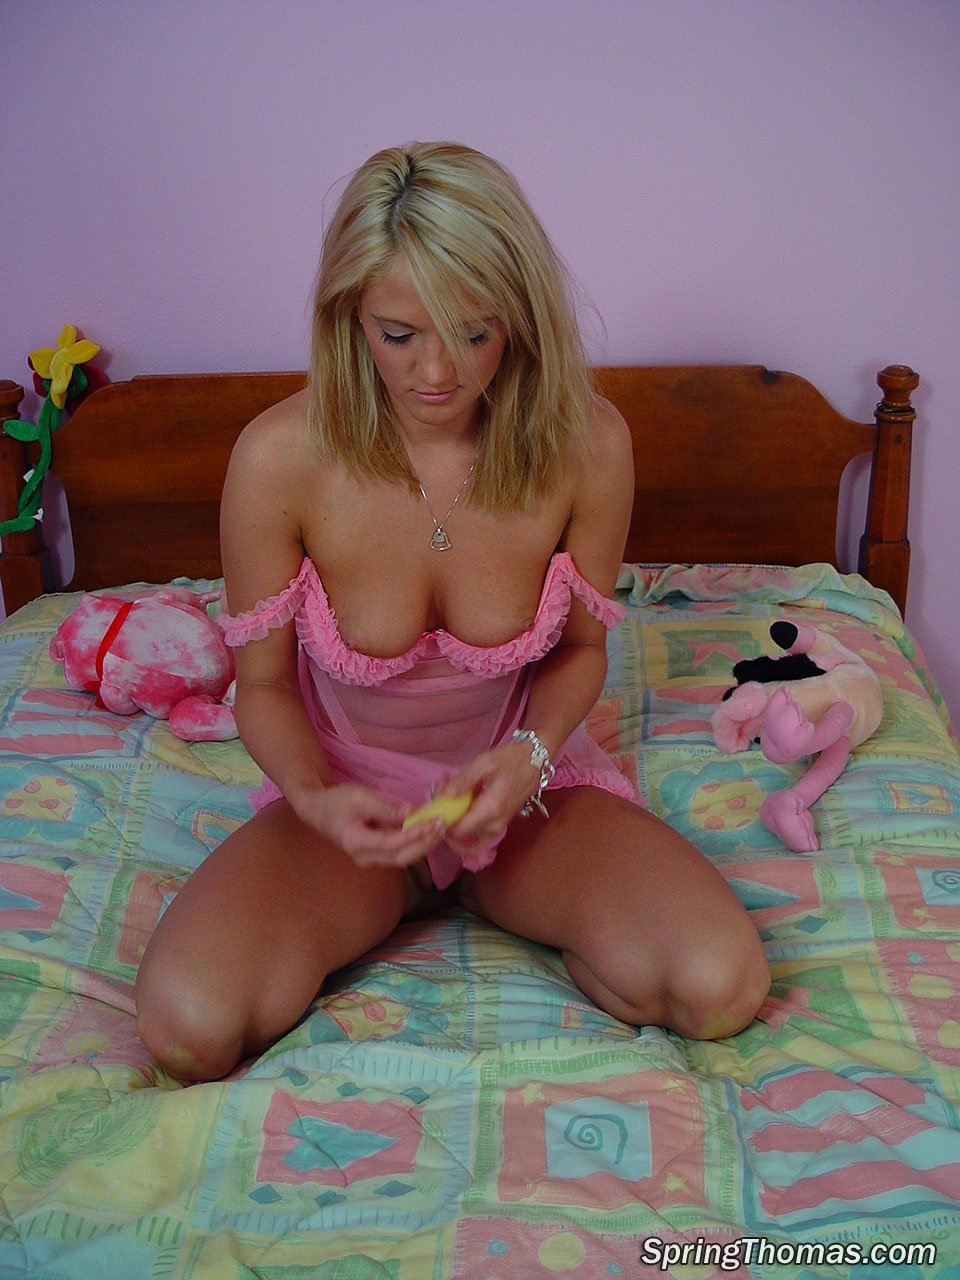 Story wife share blowjob totally free cam girls